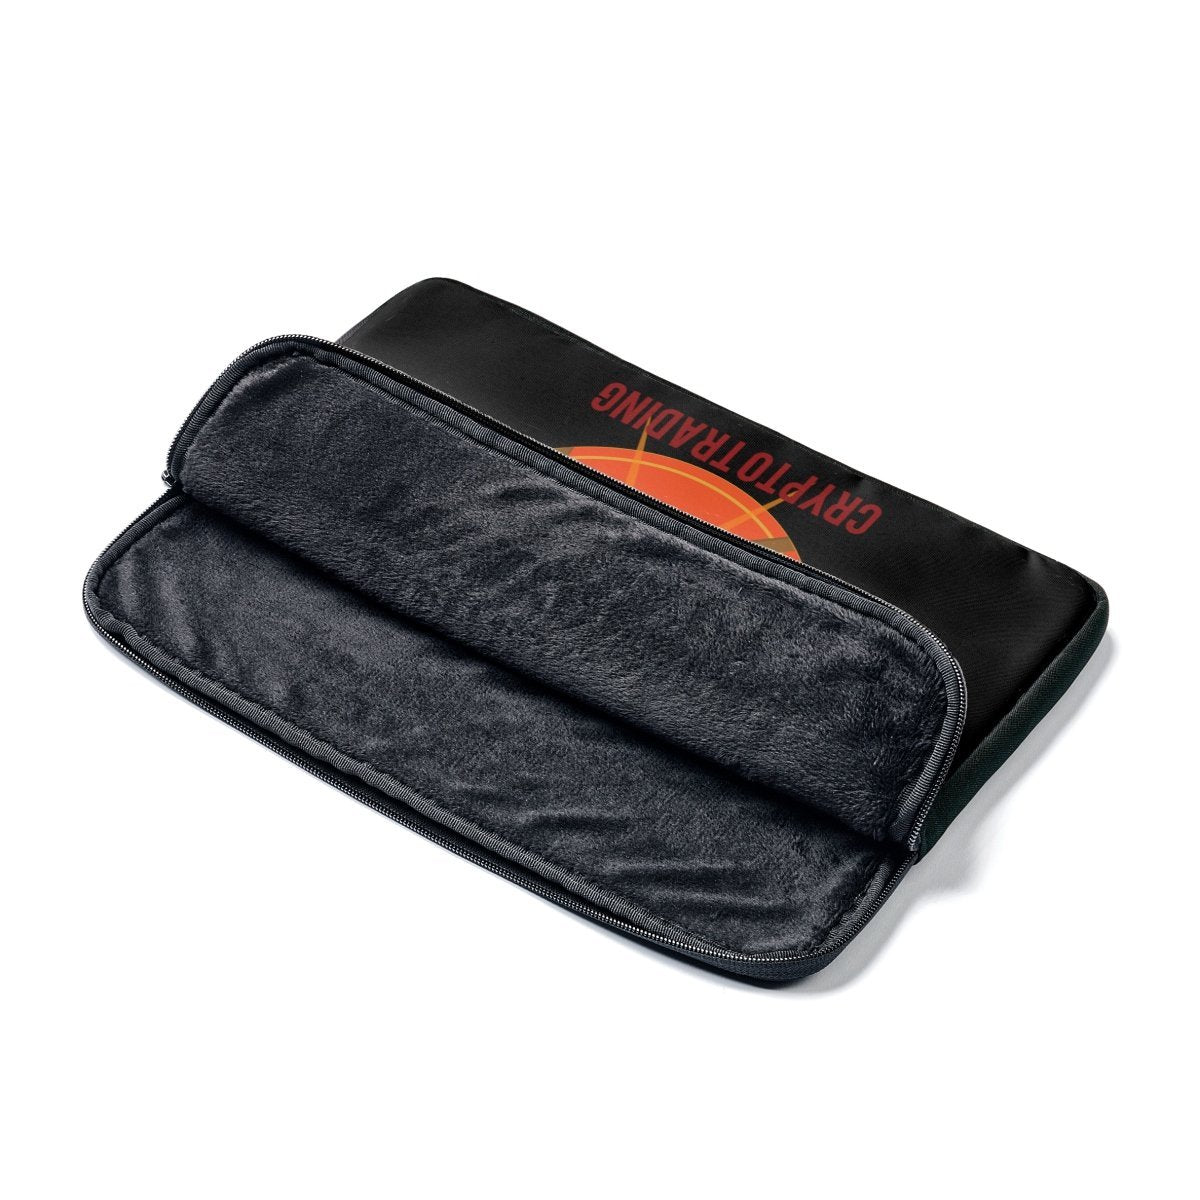 No Sleep Cryptotrading Laptop Sleeve-Accessories-DecentralMart